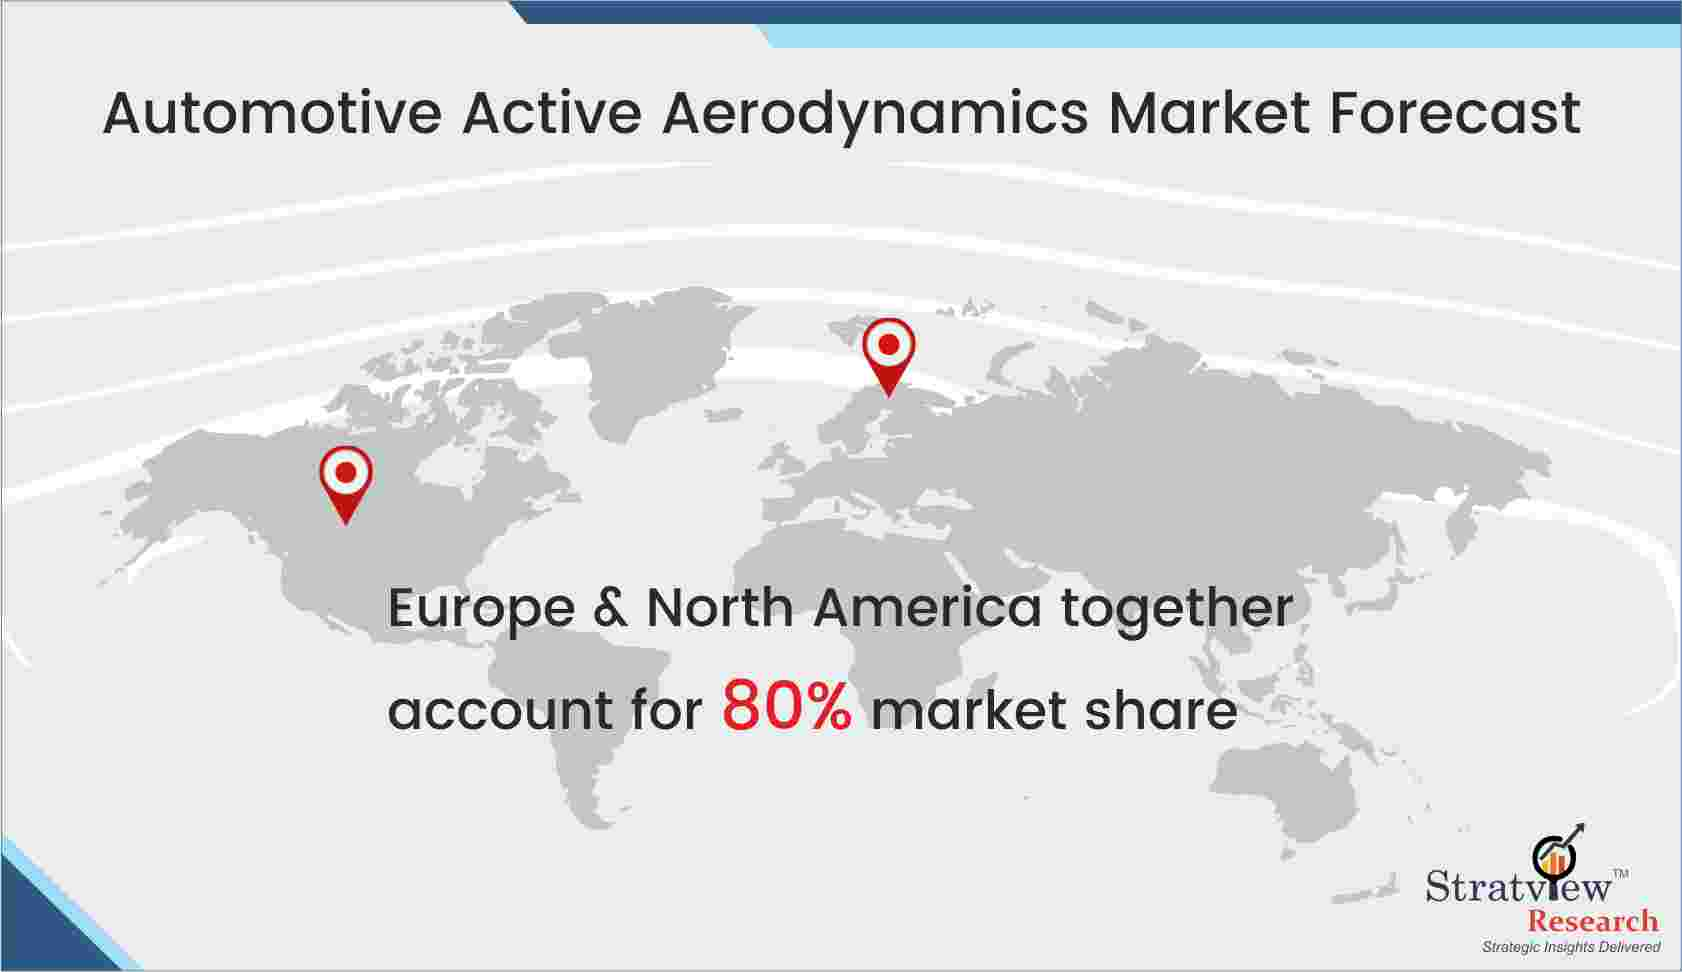 Automotive Active Aerodynamics Market Forecast